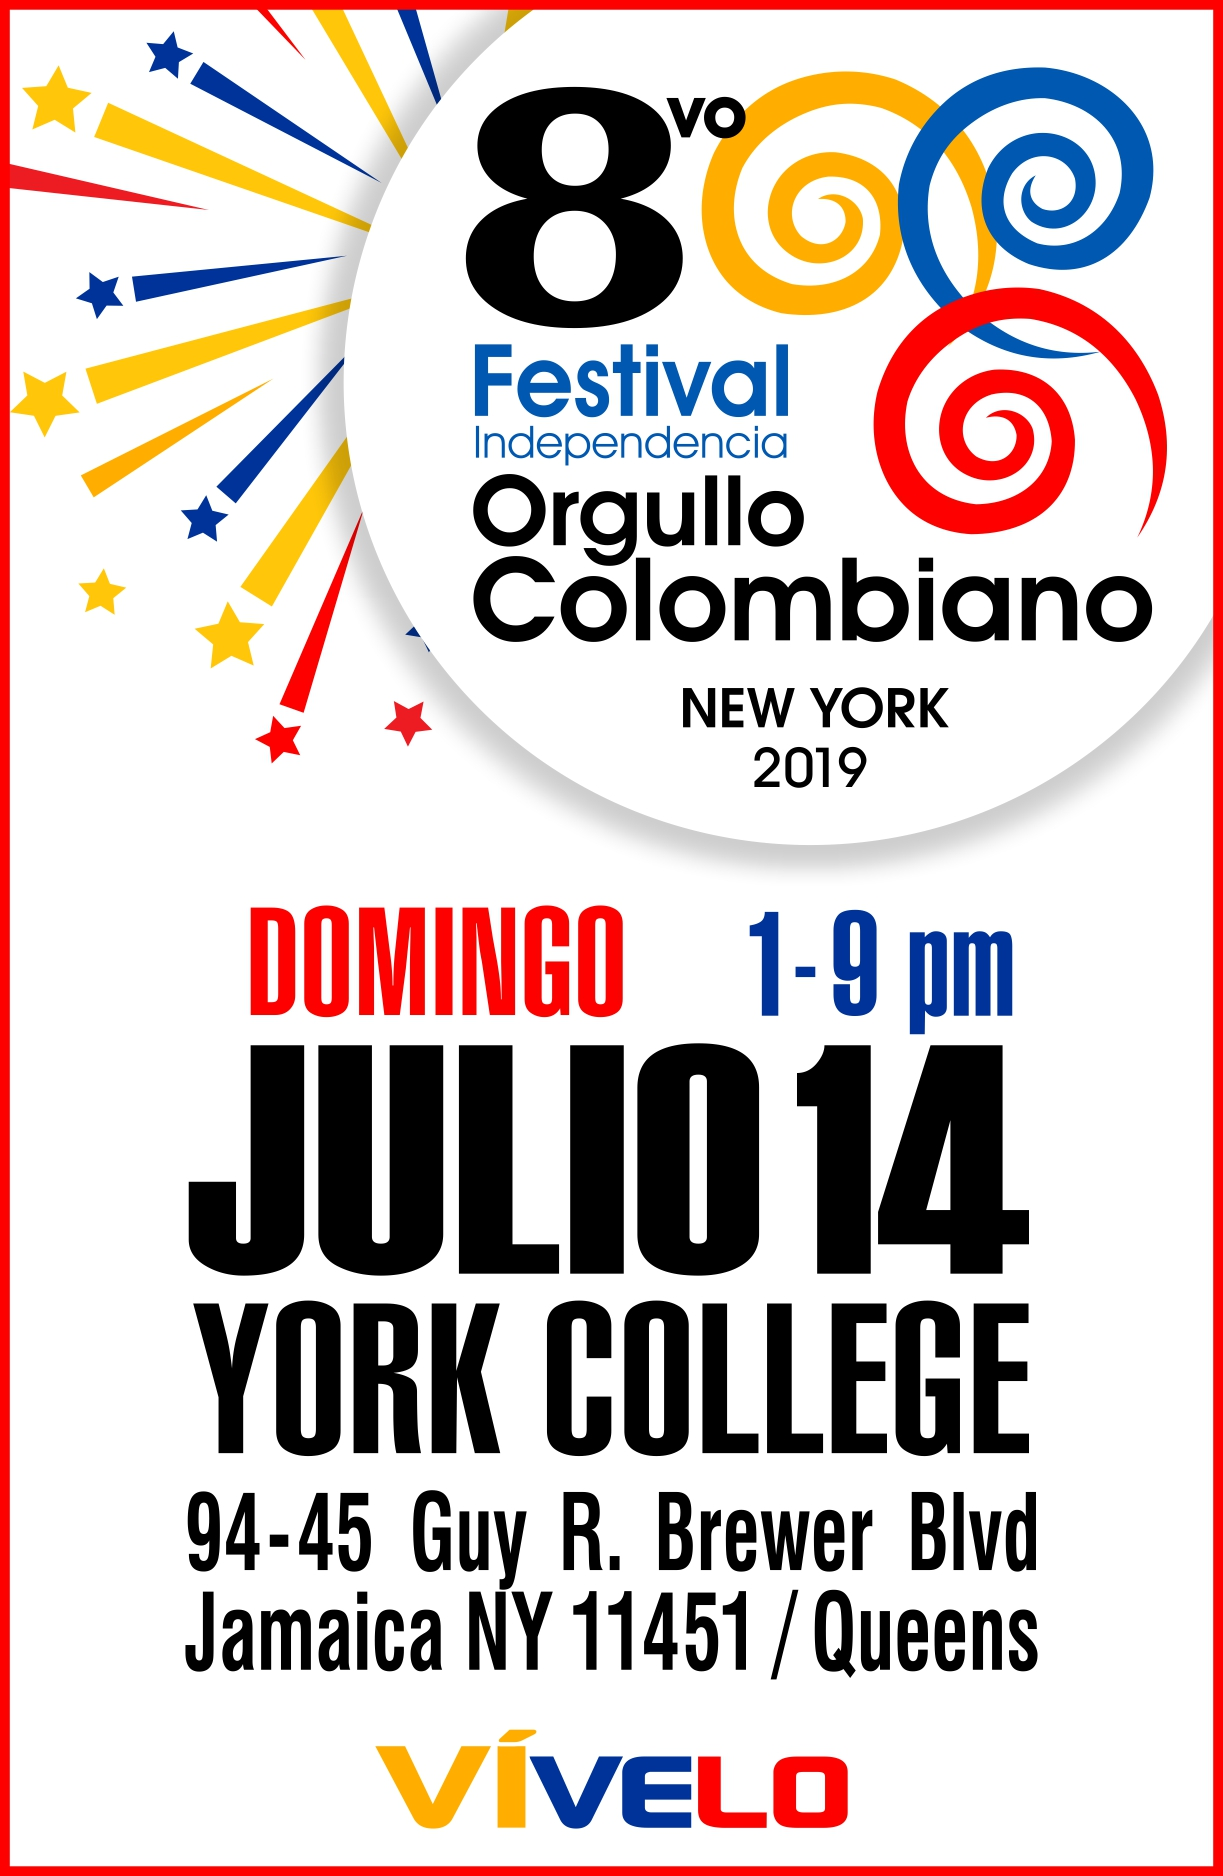 Festival Independencia Orgullo Colombiano 2019